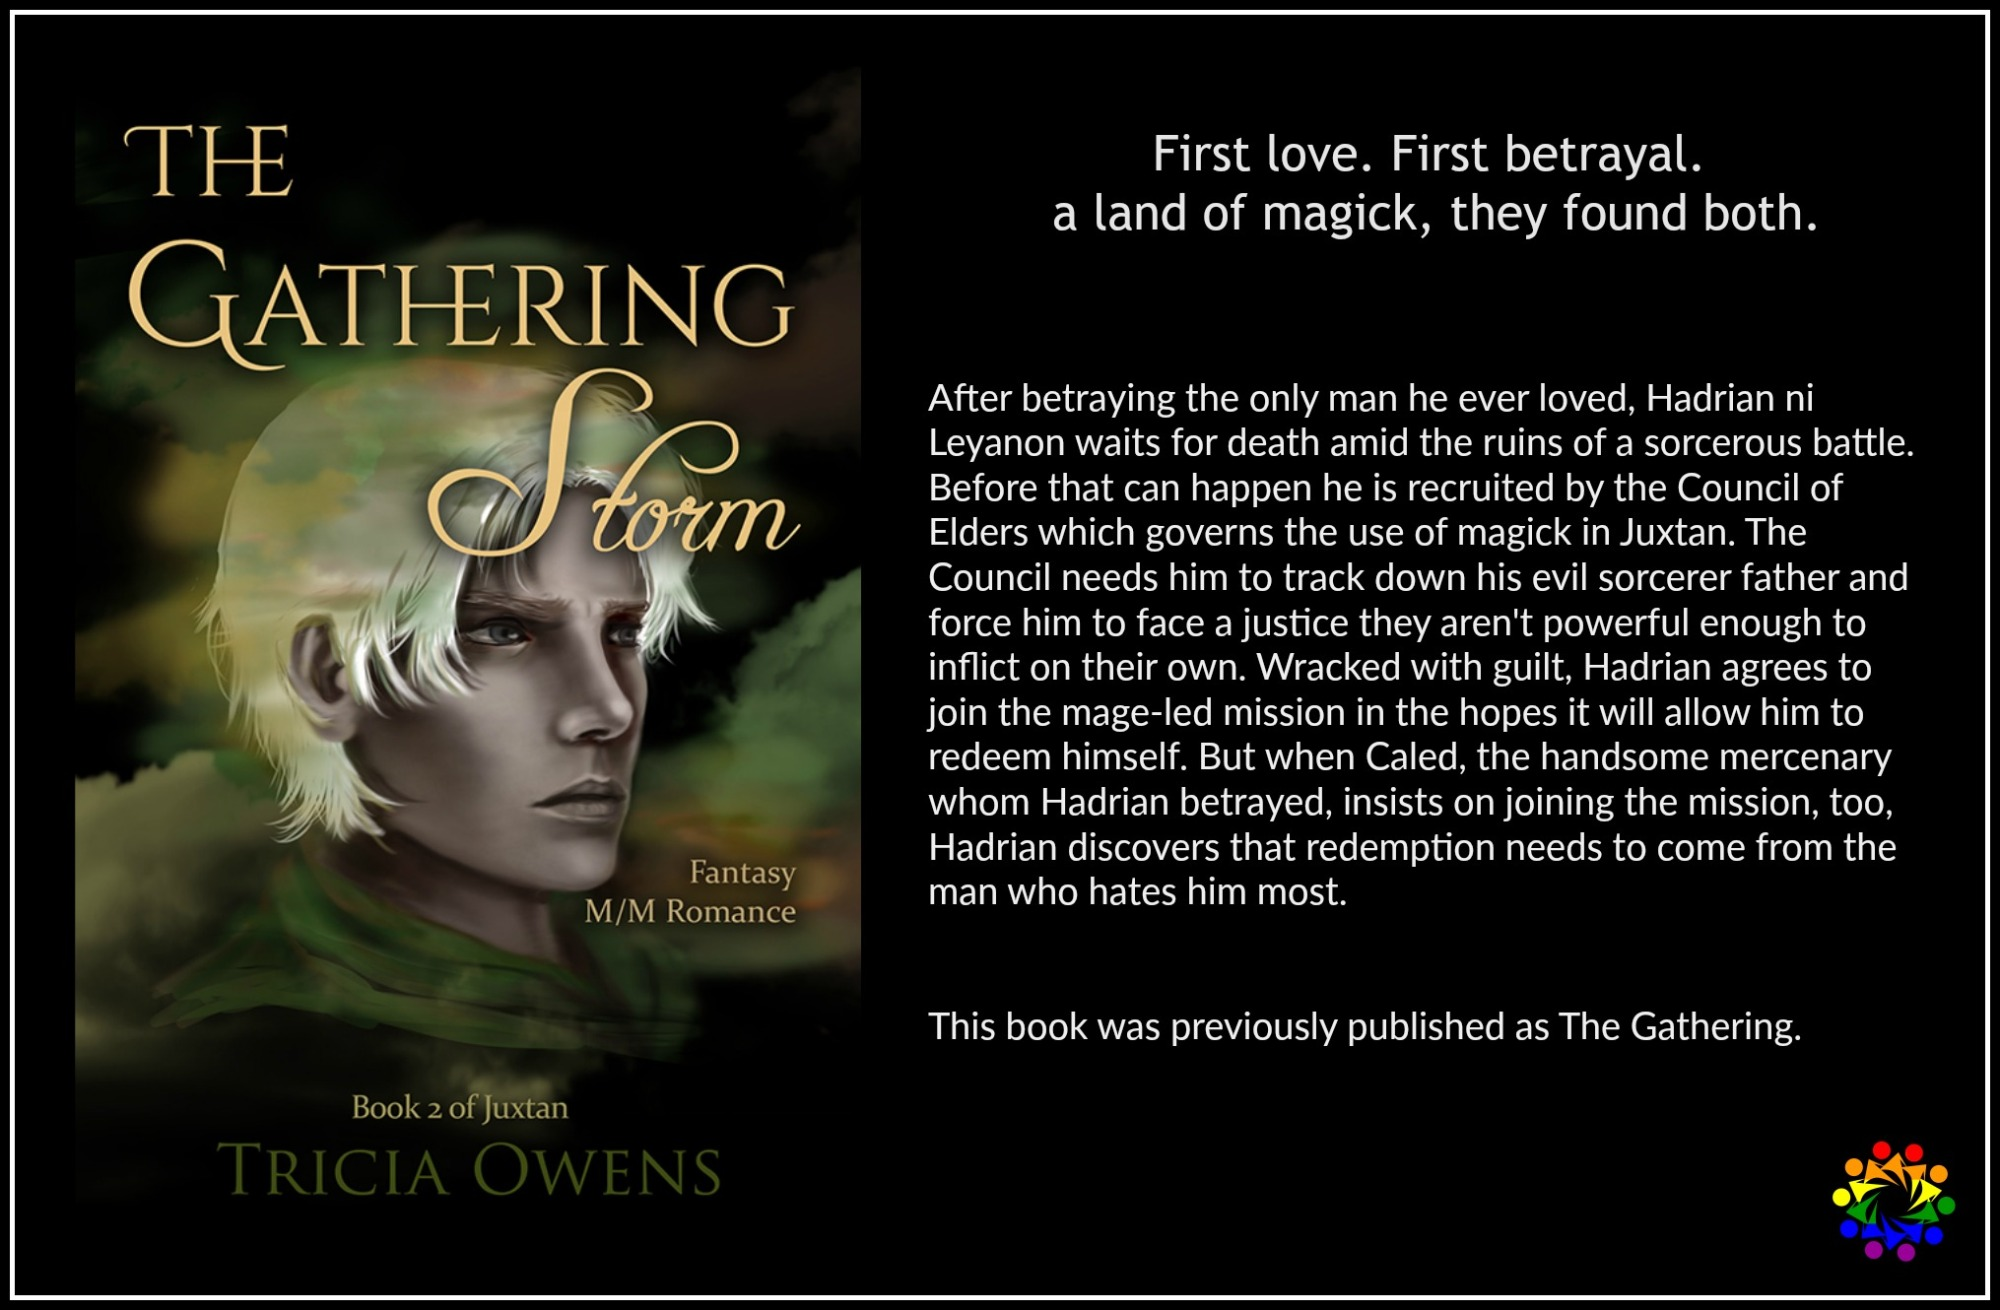 THE GATHERING STORM tricia owens Mm romance fantasy